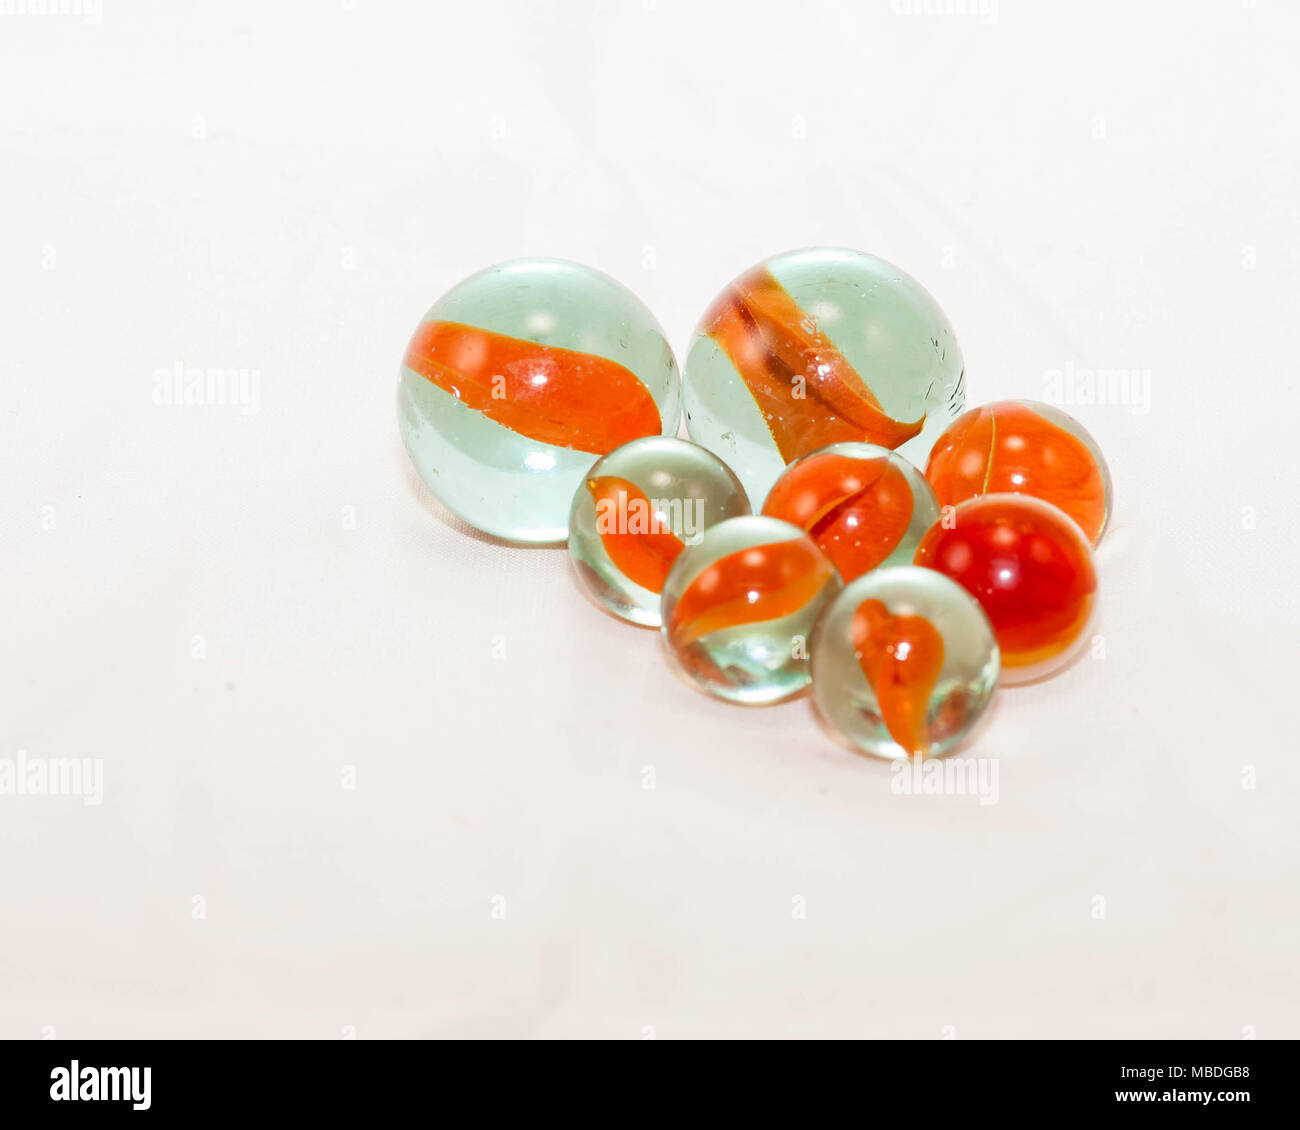 close up of two sizes of orange cats-eye marbles - Stock Image